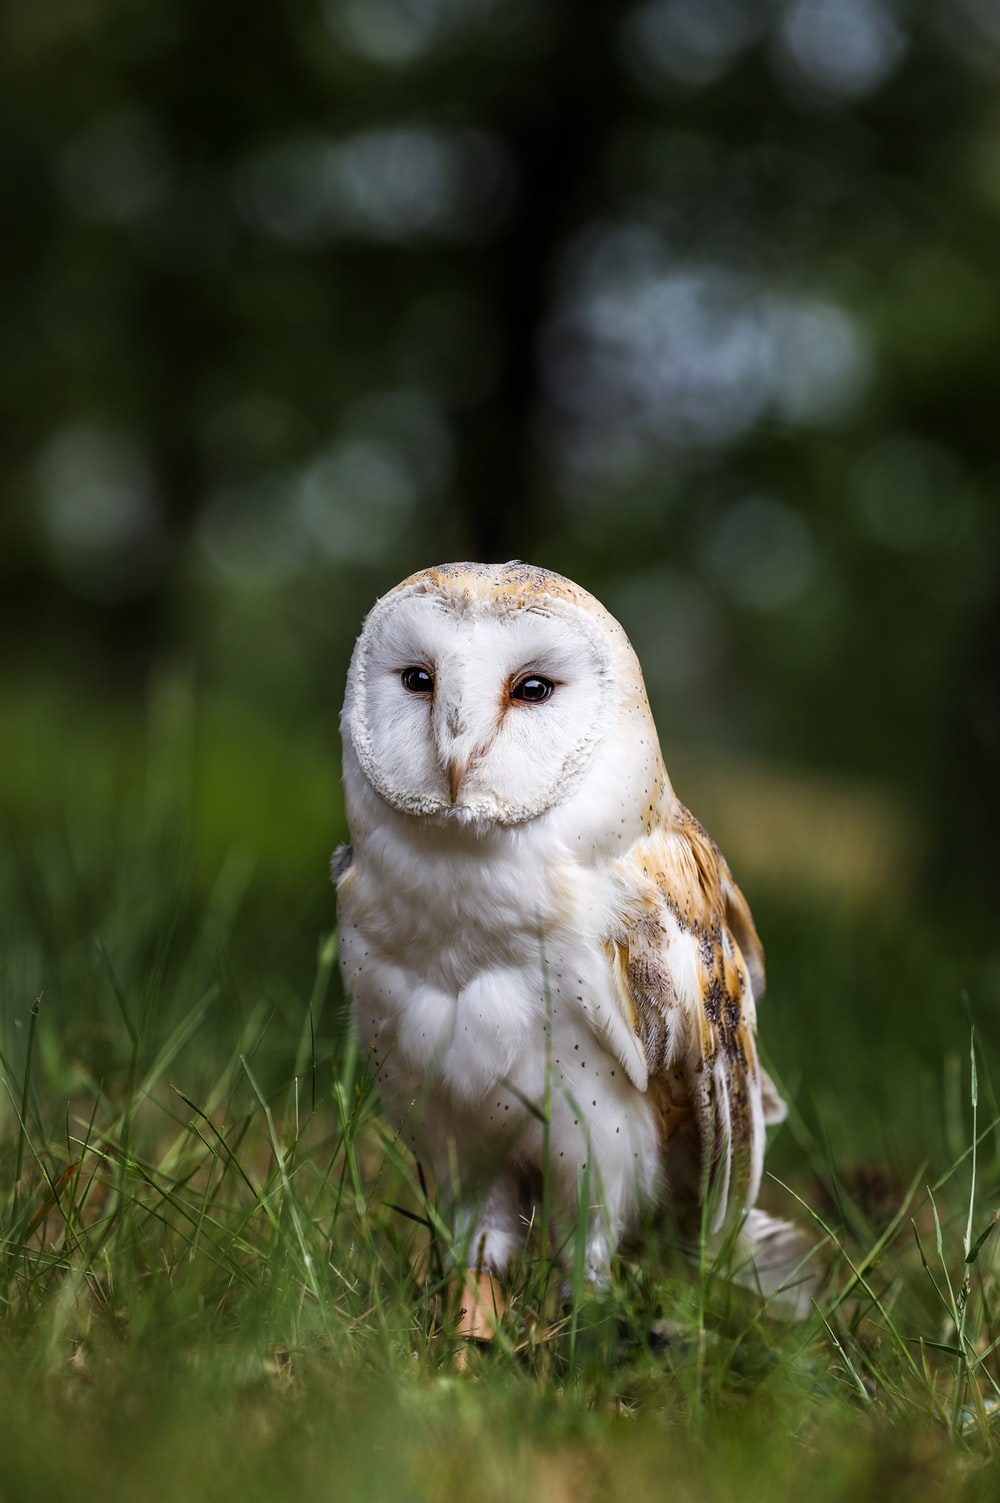 white and brown owl on grassy field